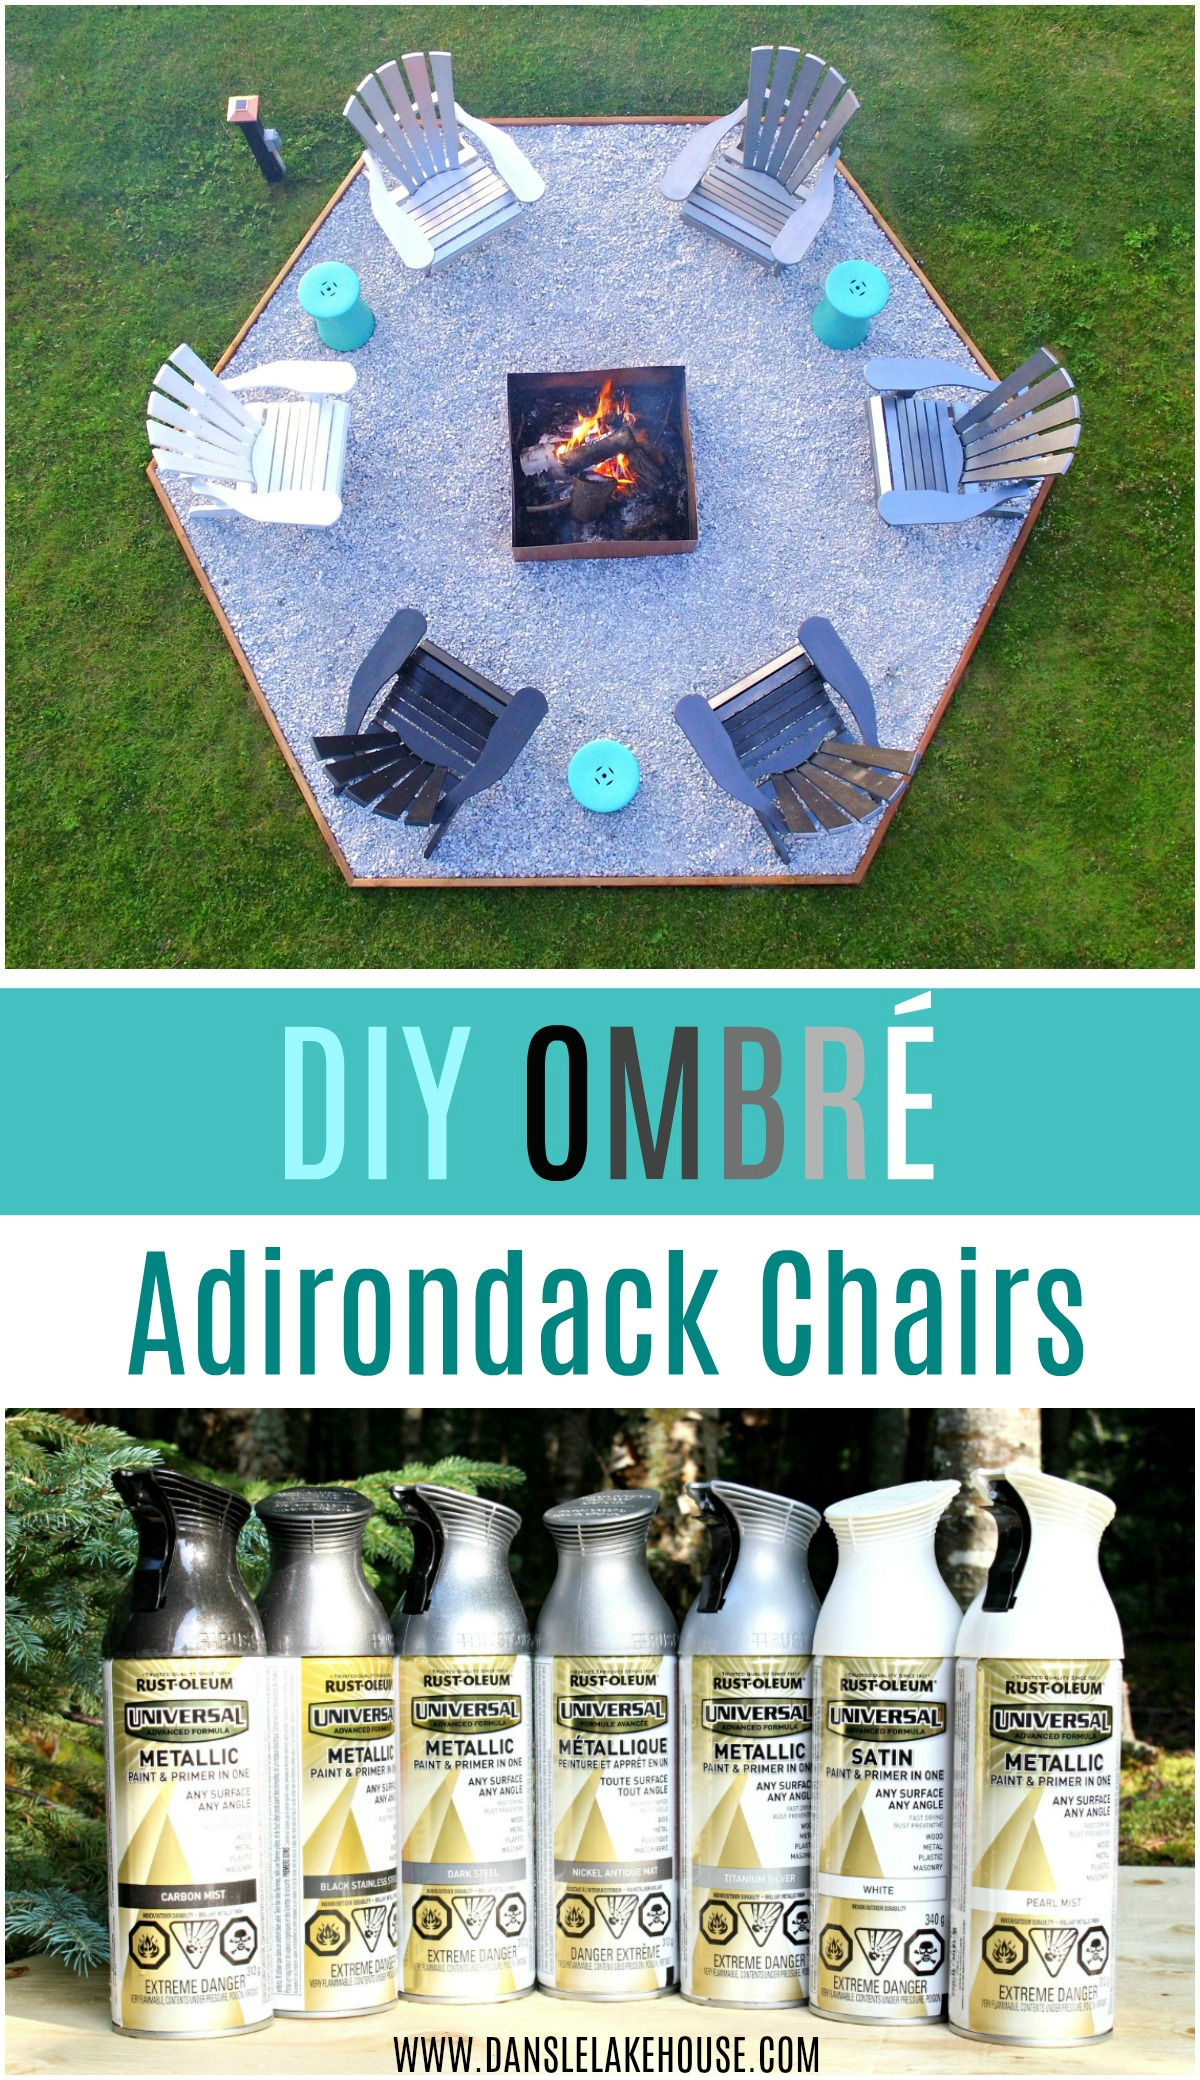 Modern Fire Pit Makeover + DIY Ombre Adirondack Chairs (Sponsored by The Home Depot Canada)